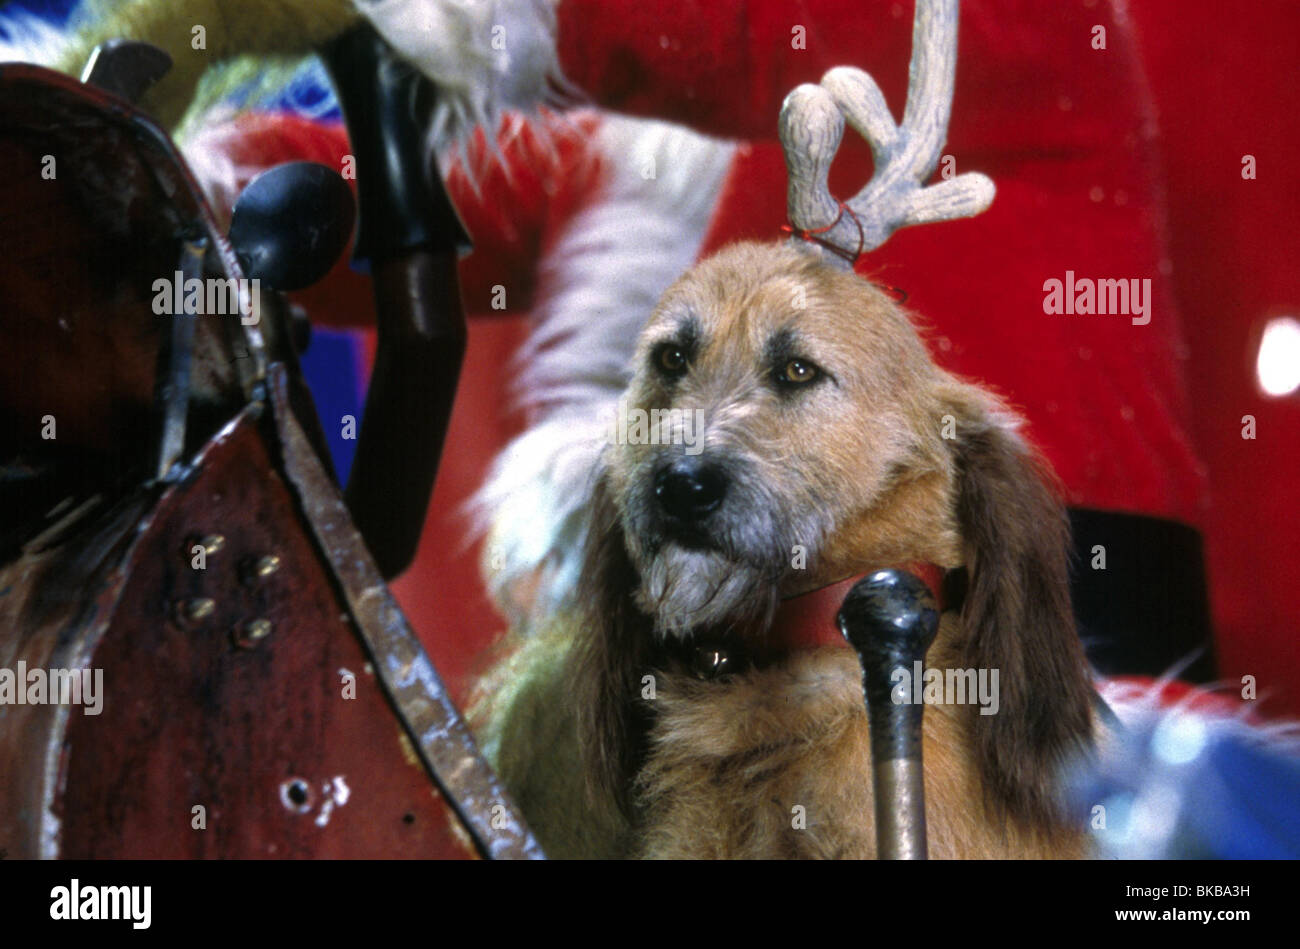 how the grinch stole christmas 2000 howt 007 stock image - How The Grinch Stole Christmas 2000 Cast